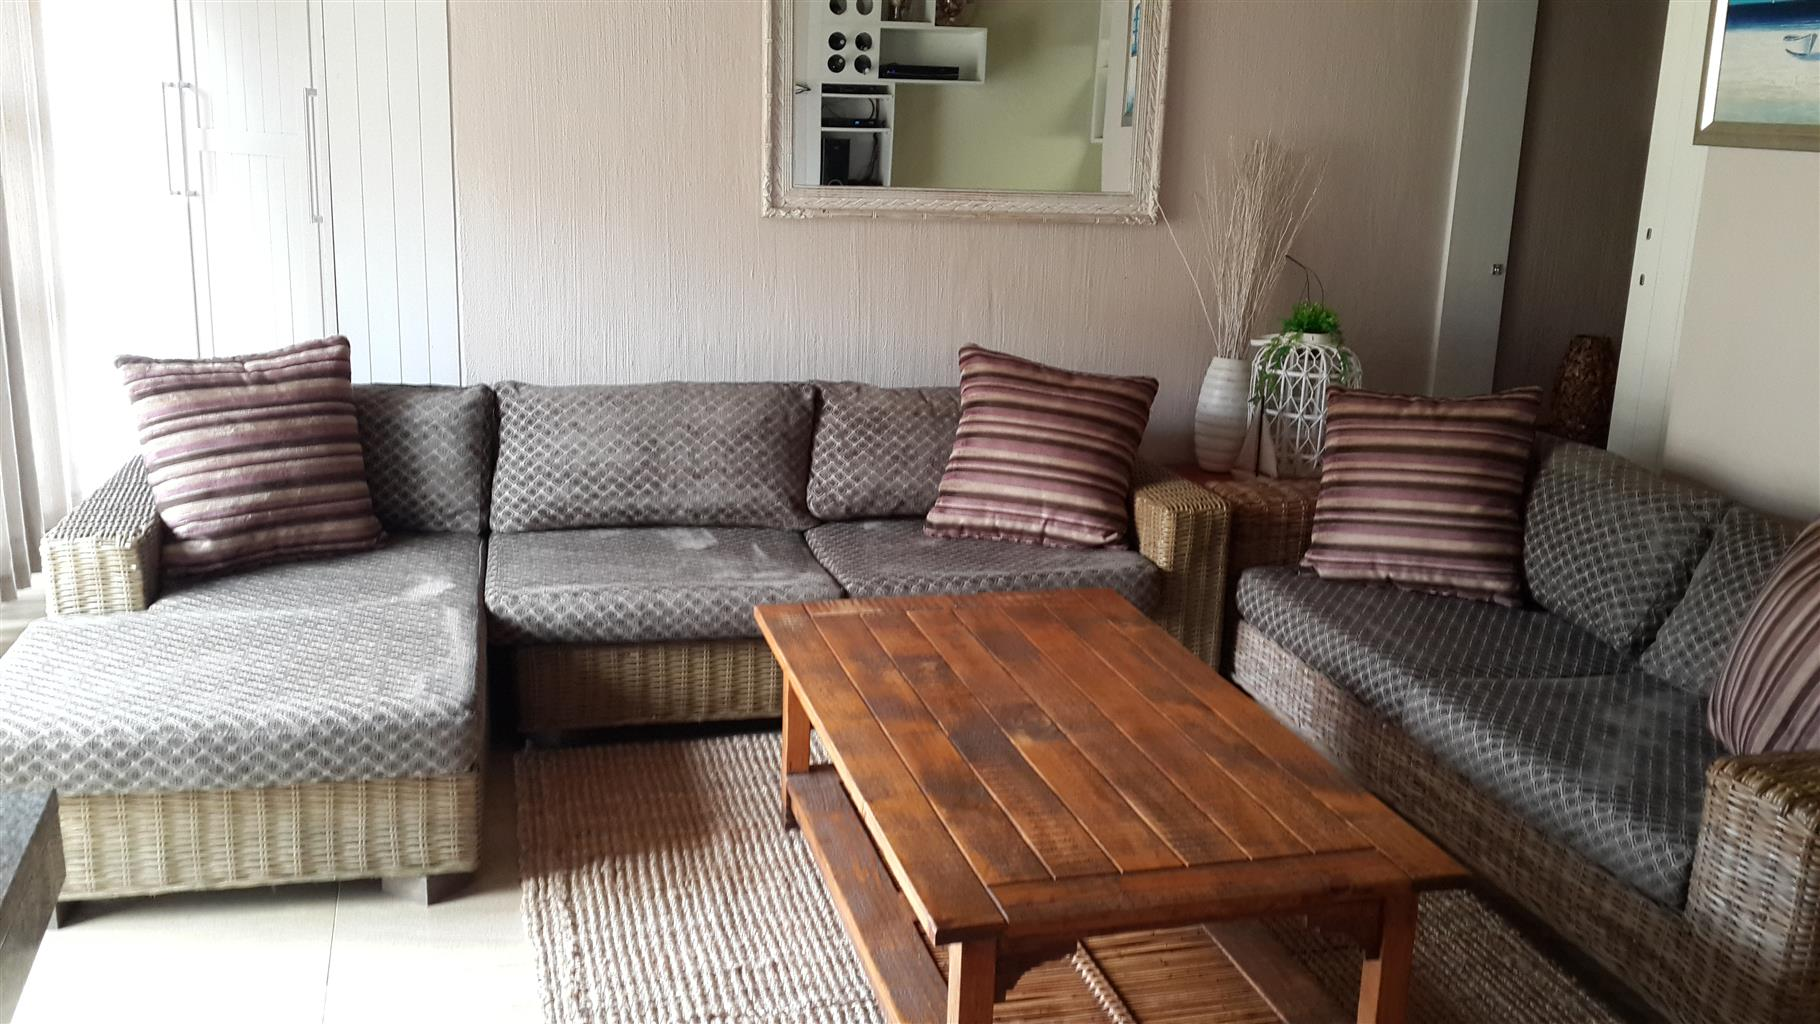 JUNE /JULY /AUGUST, SELF-CATERING, WINKELSPRUIT, AMANZIMTOTI ON THE BEACH, MAX6-24 HR SEC